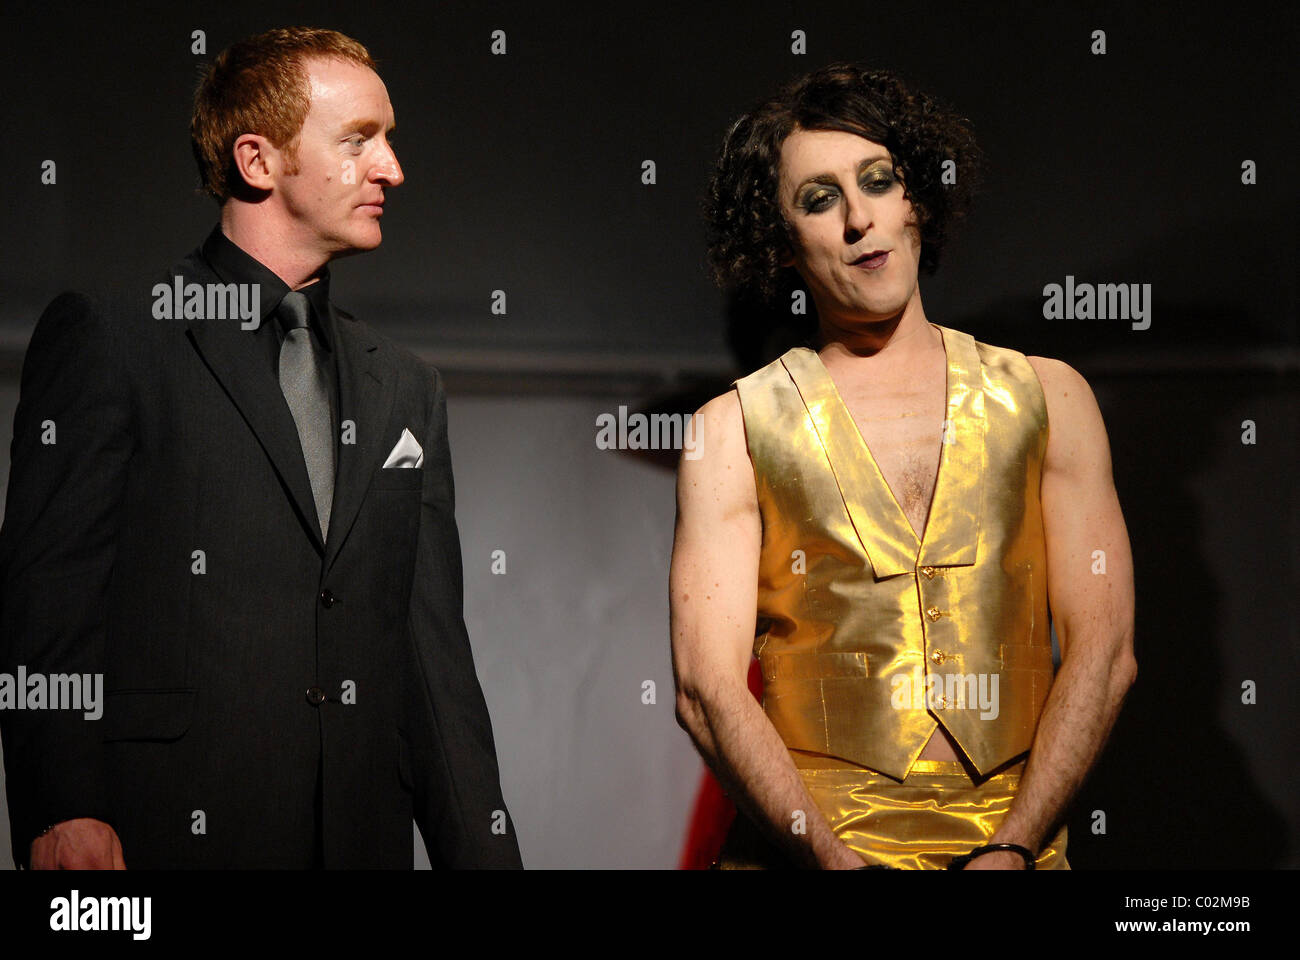 Tony Curren and Alan Cummings The Bacchae photocall at the Lyric Theatre London, England - 07.09.07 Stock Photo